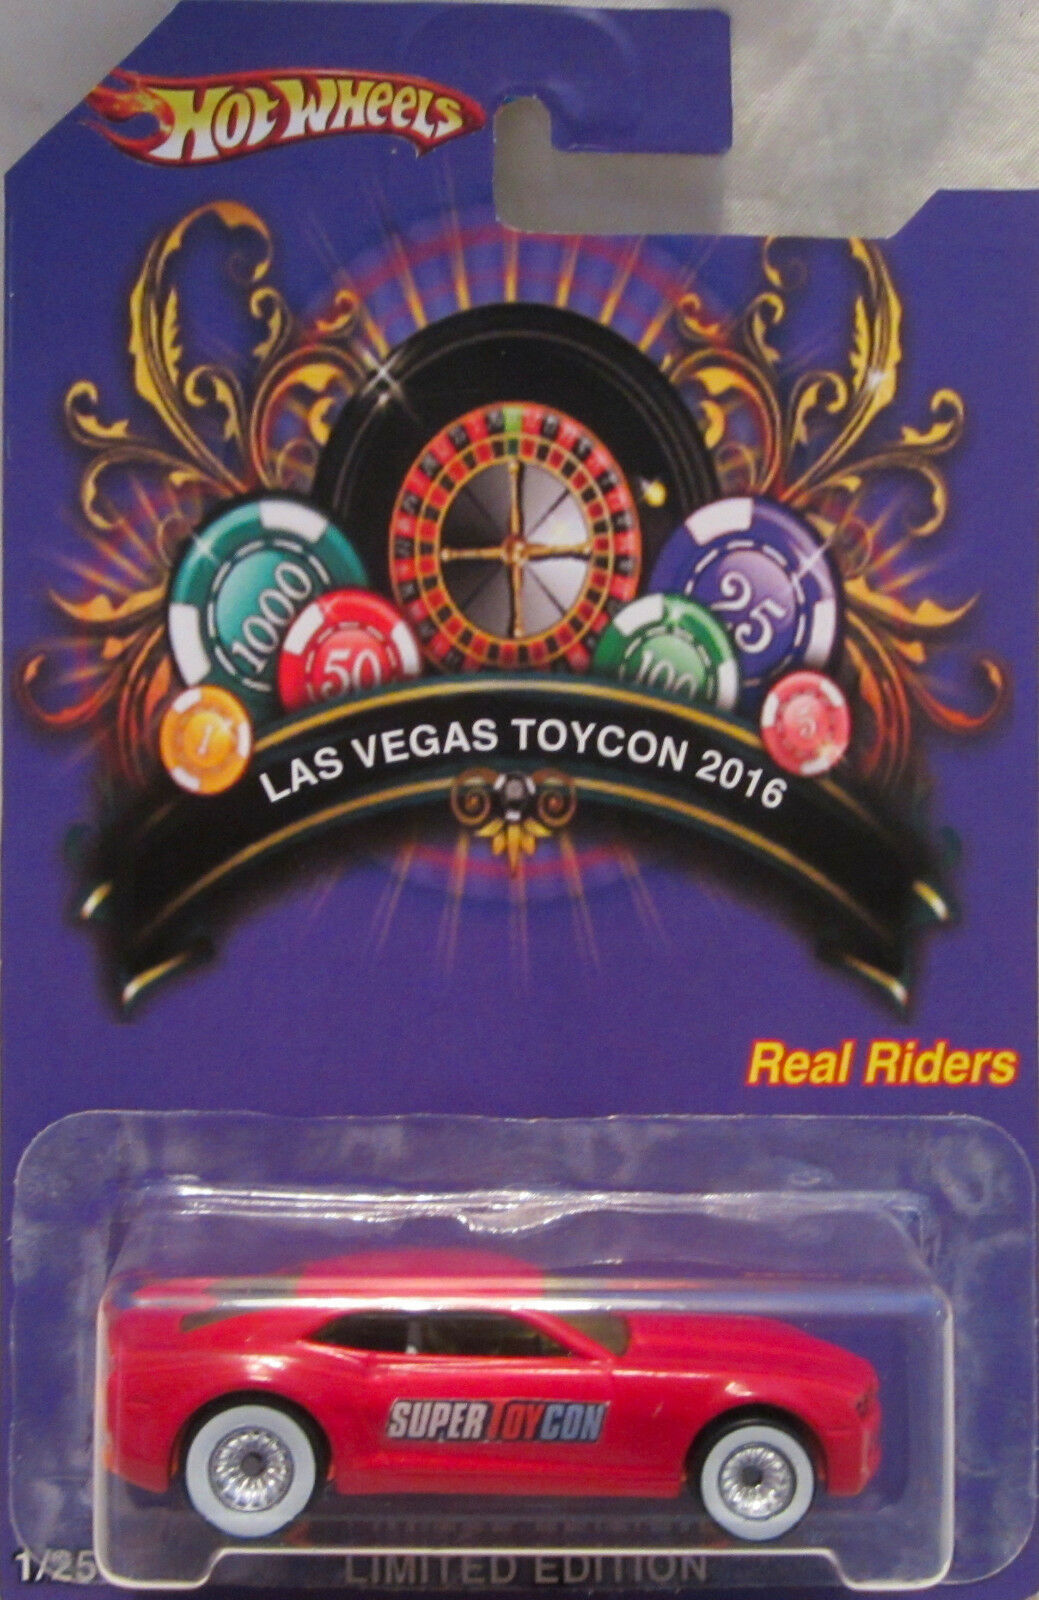 Hot Wheels Personnalisé Chevy Camaro 2016 Las Vegas Convention Real Riders 1 25